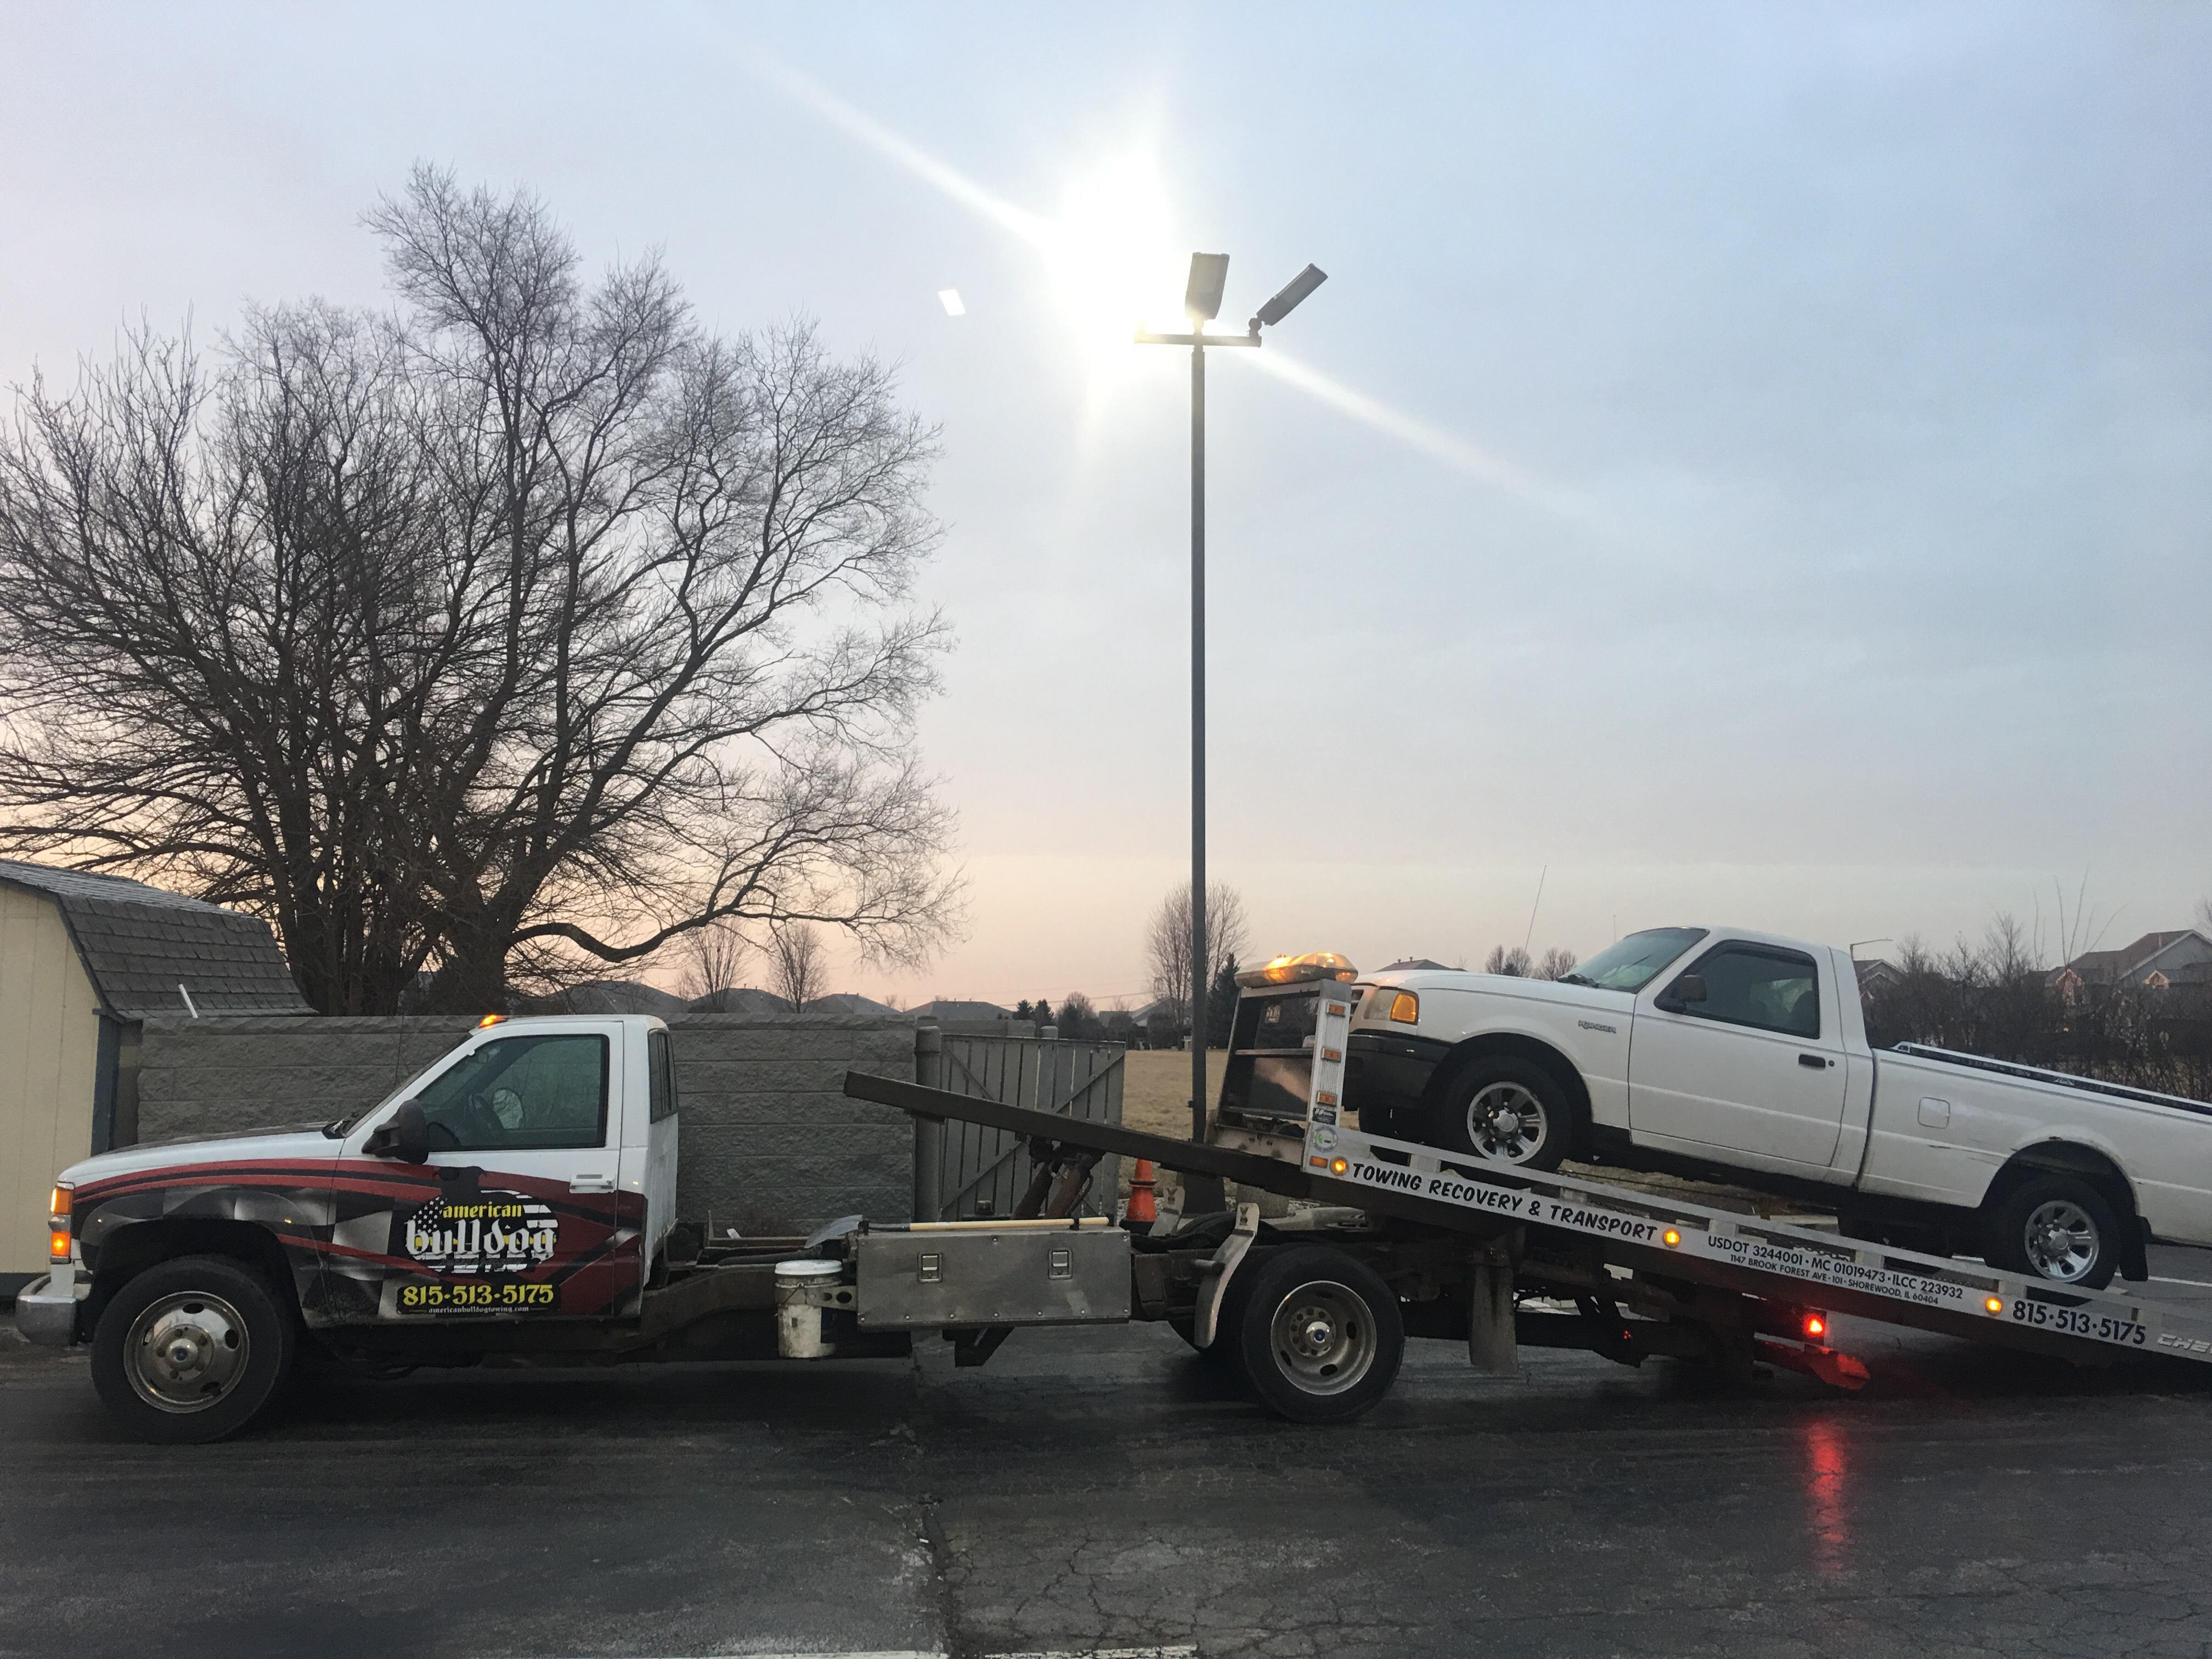 American Bulldog Towing and Recovery